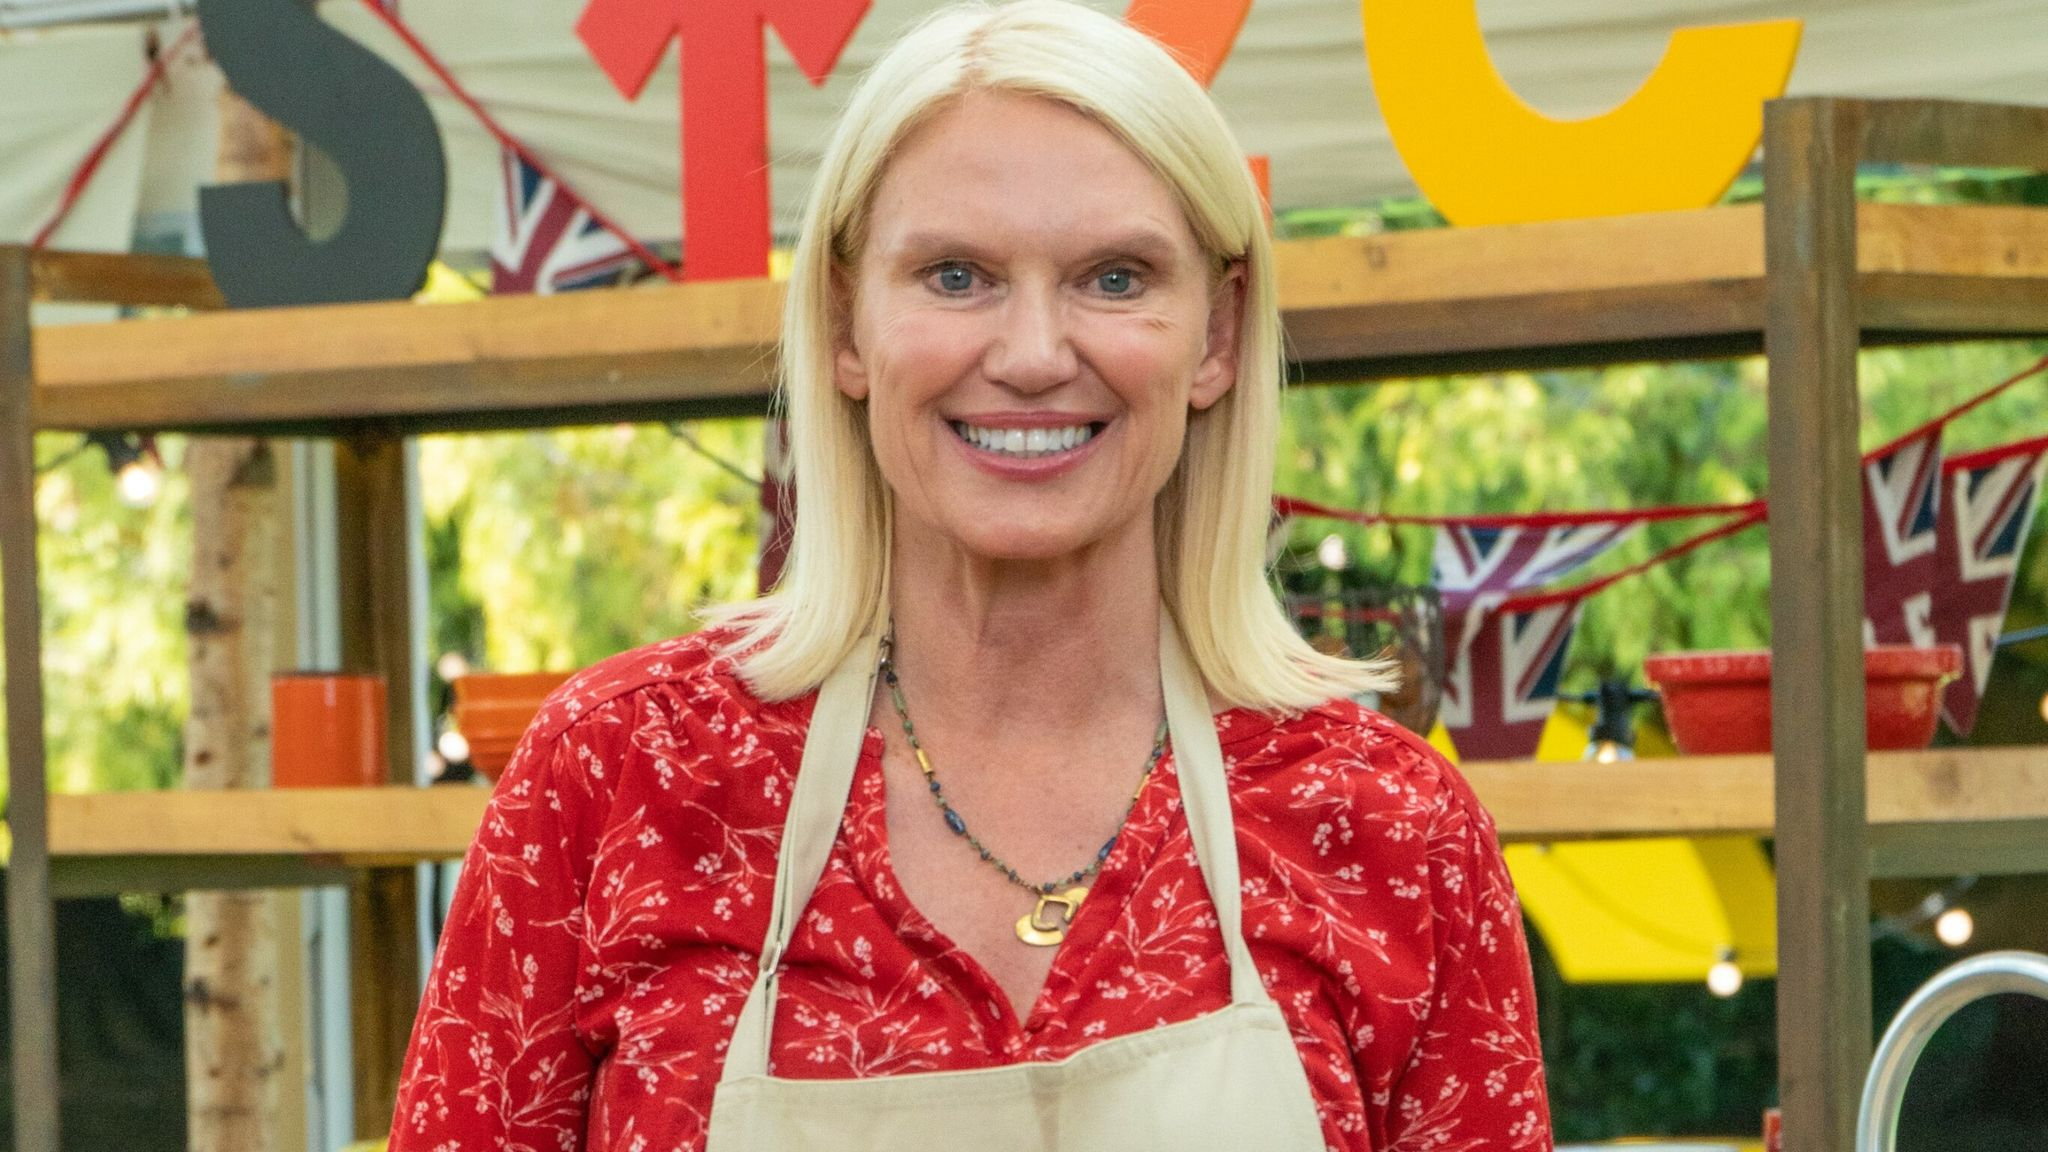 Anneka Rice is taking part in The Great Celebrity Bake Off for Stand Up To Cancer. Pic: Channel 4